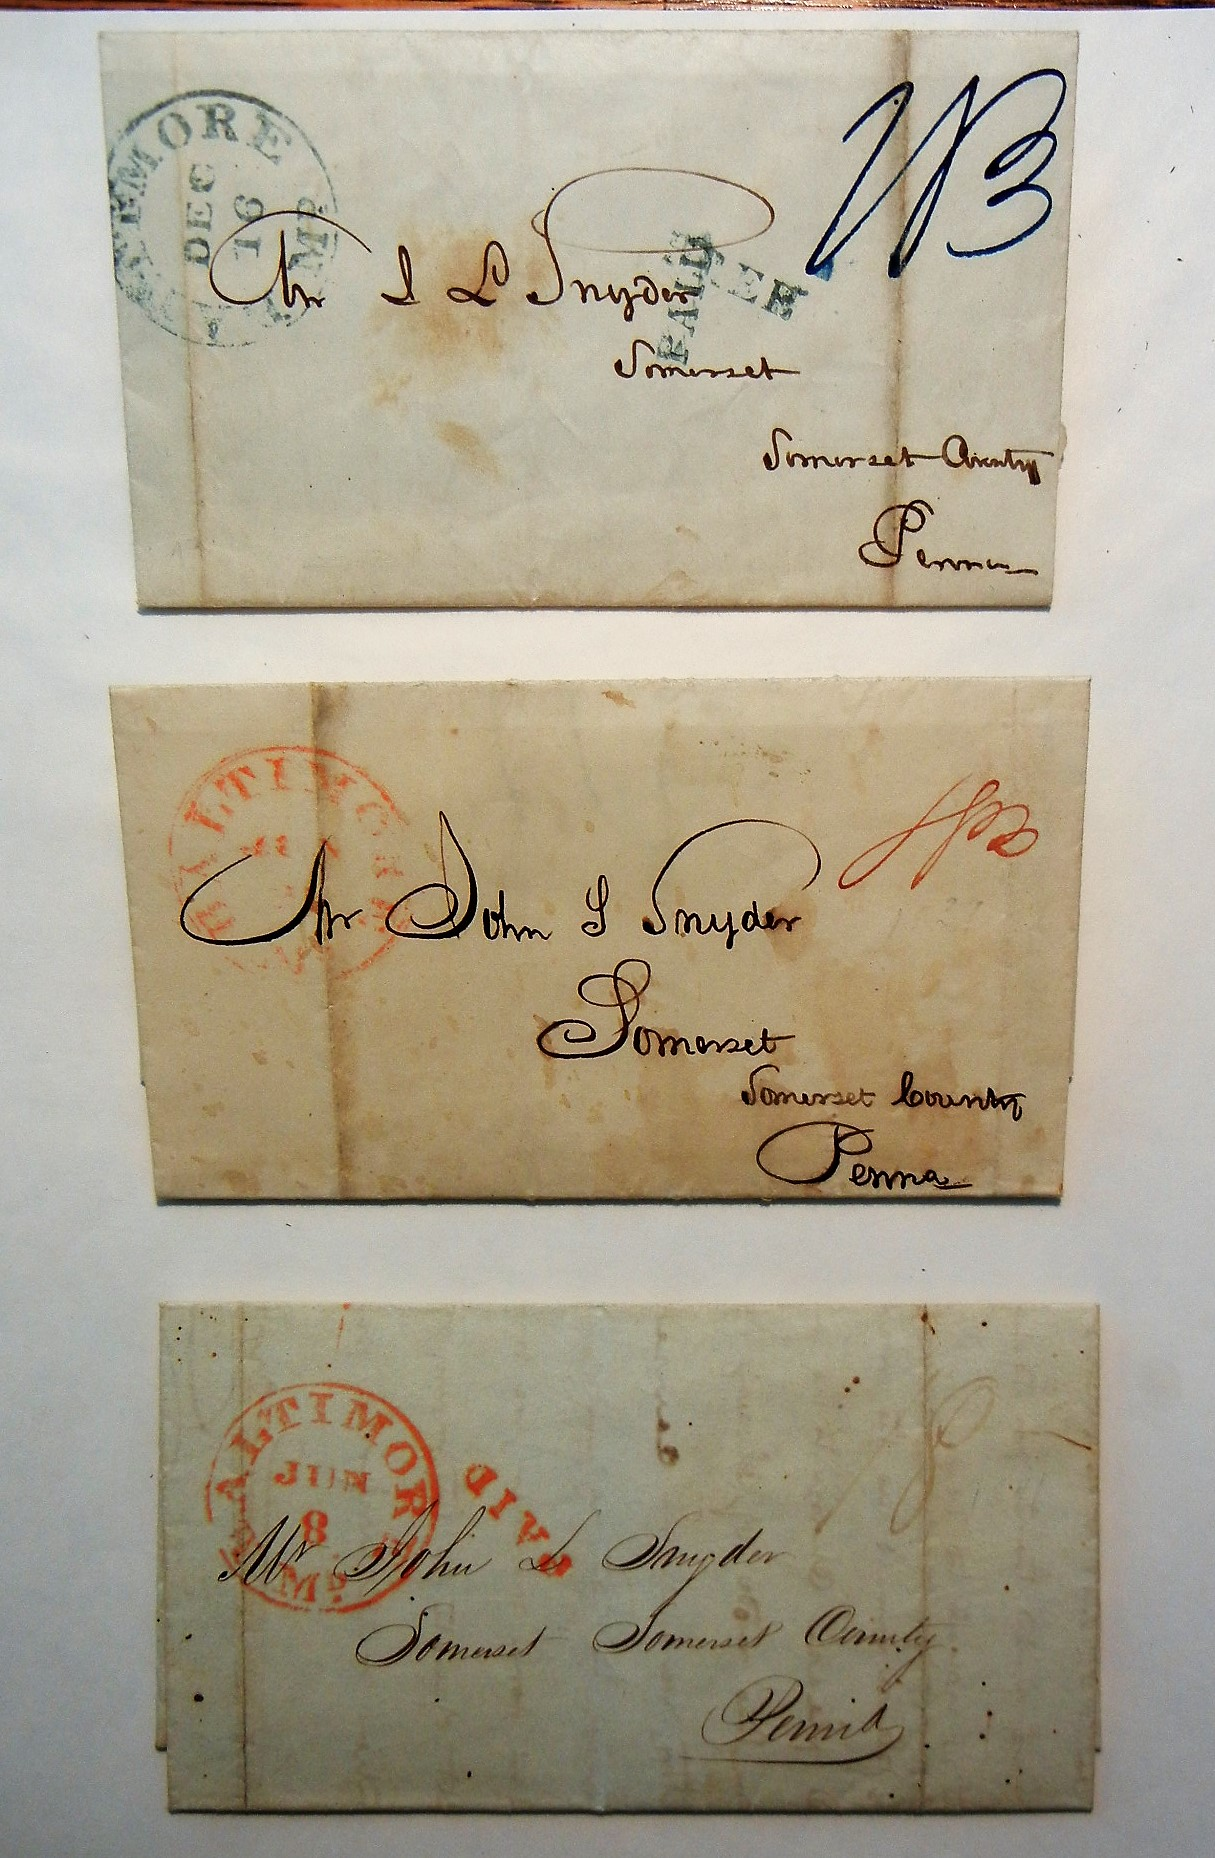 BALTIMORE MARYLAND - 3 STAMPLESS FOLDED LETTERS (ONE 1839